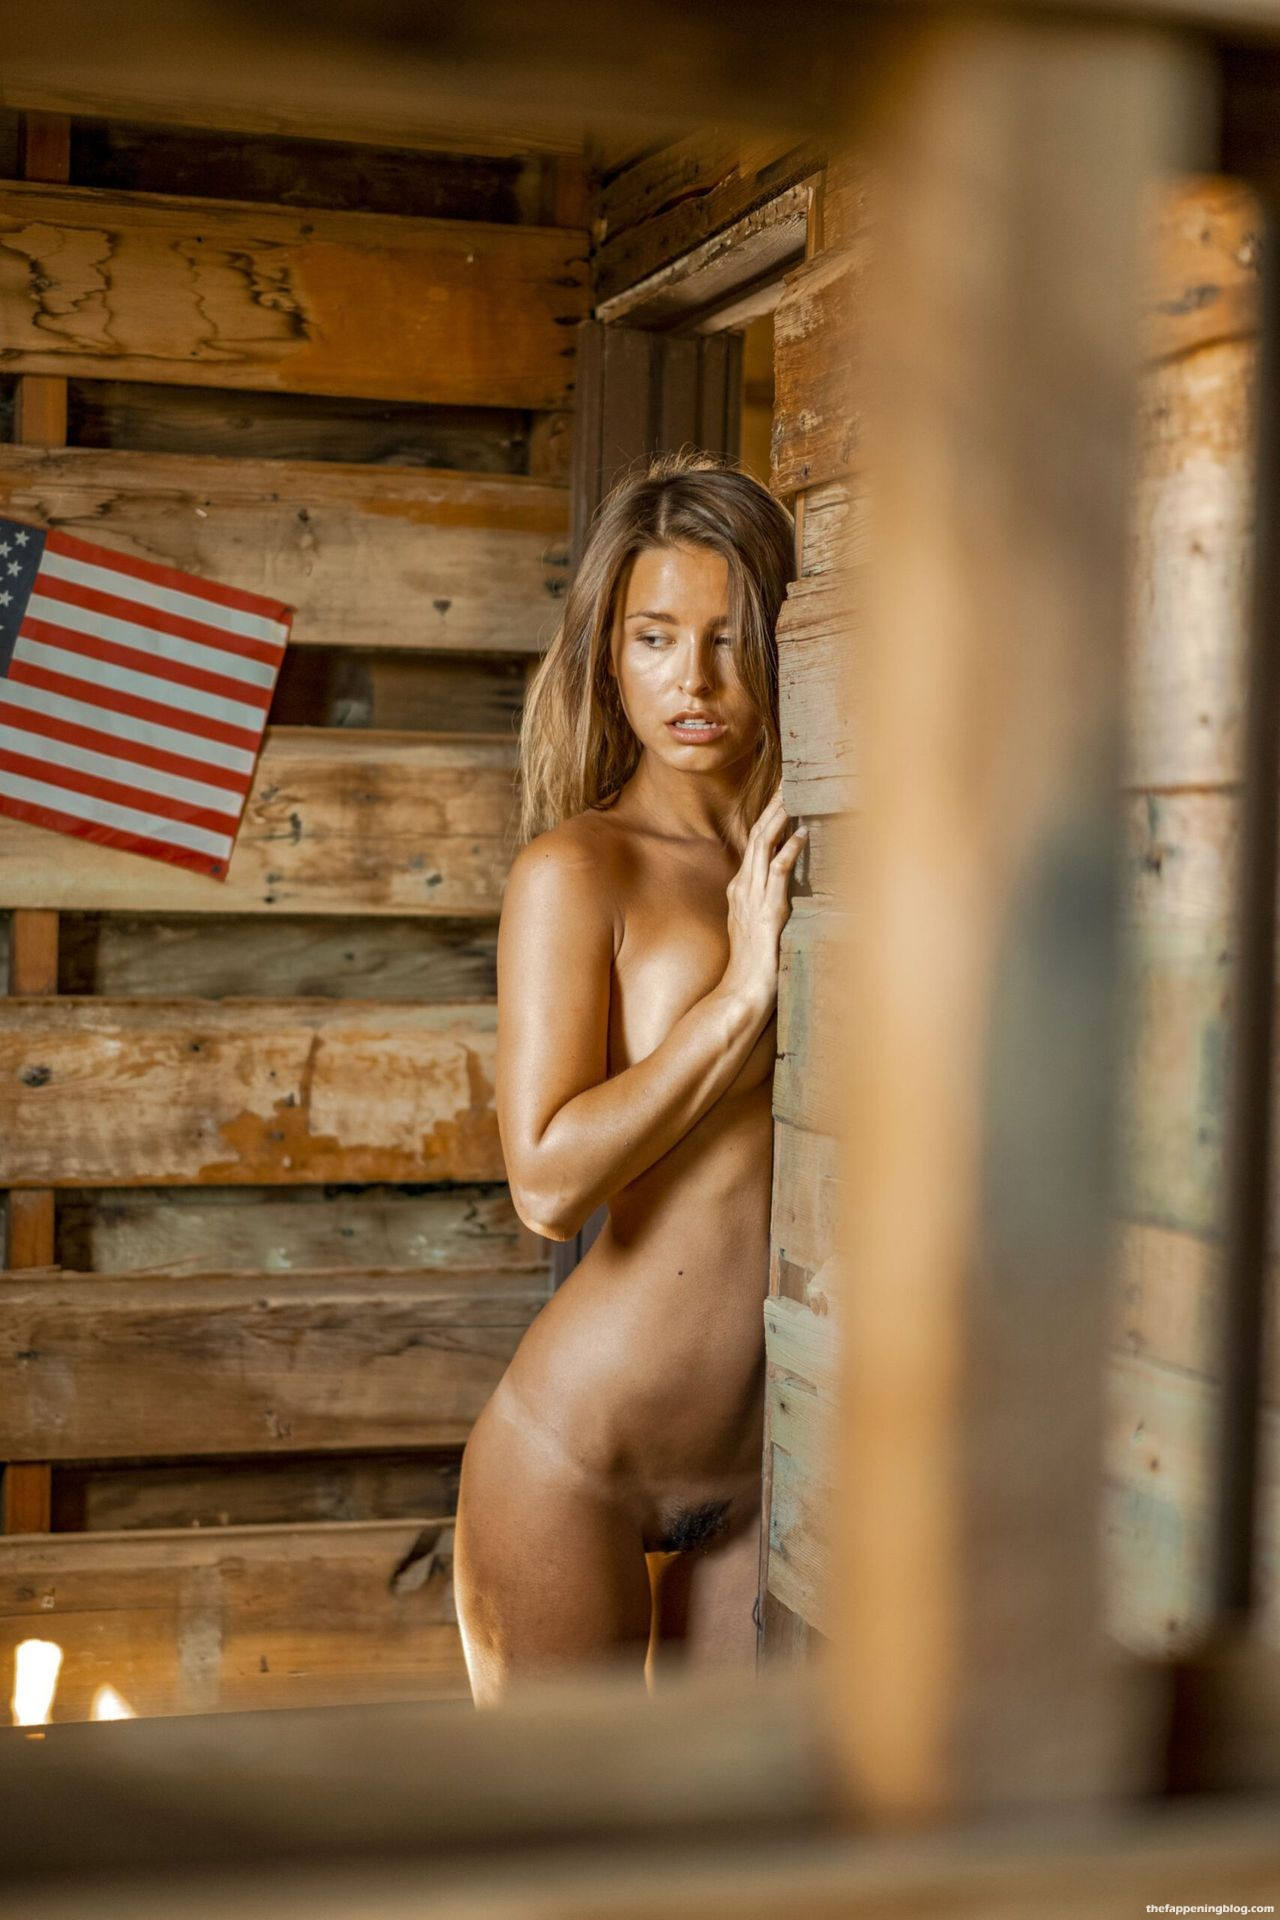 Marisa-Papen-Stunning-Naked-Body-16-scaled1-thefappeningblog.com_.jpg